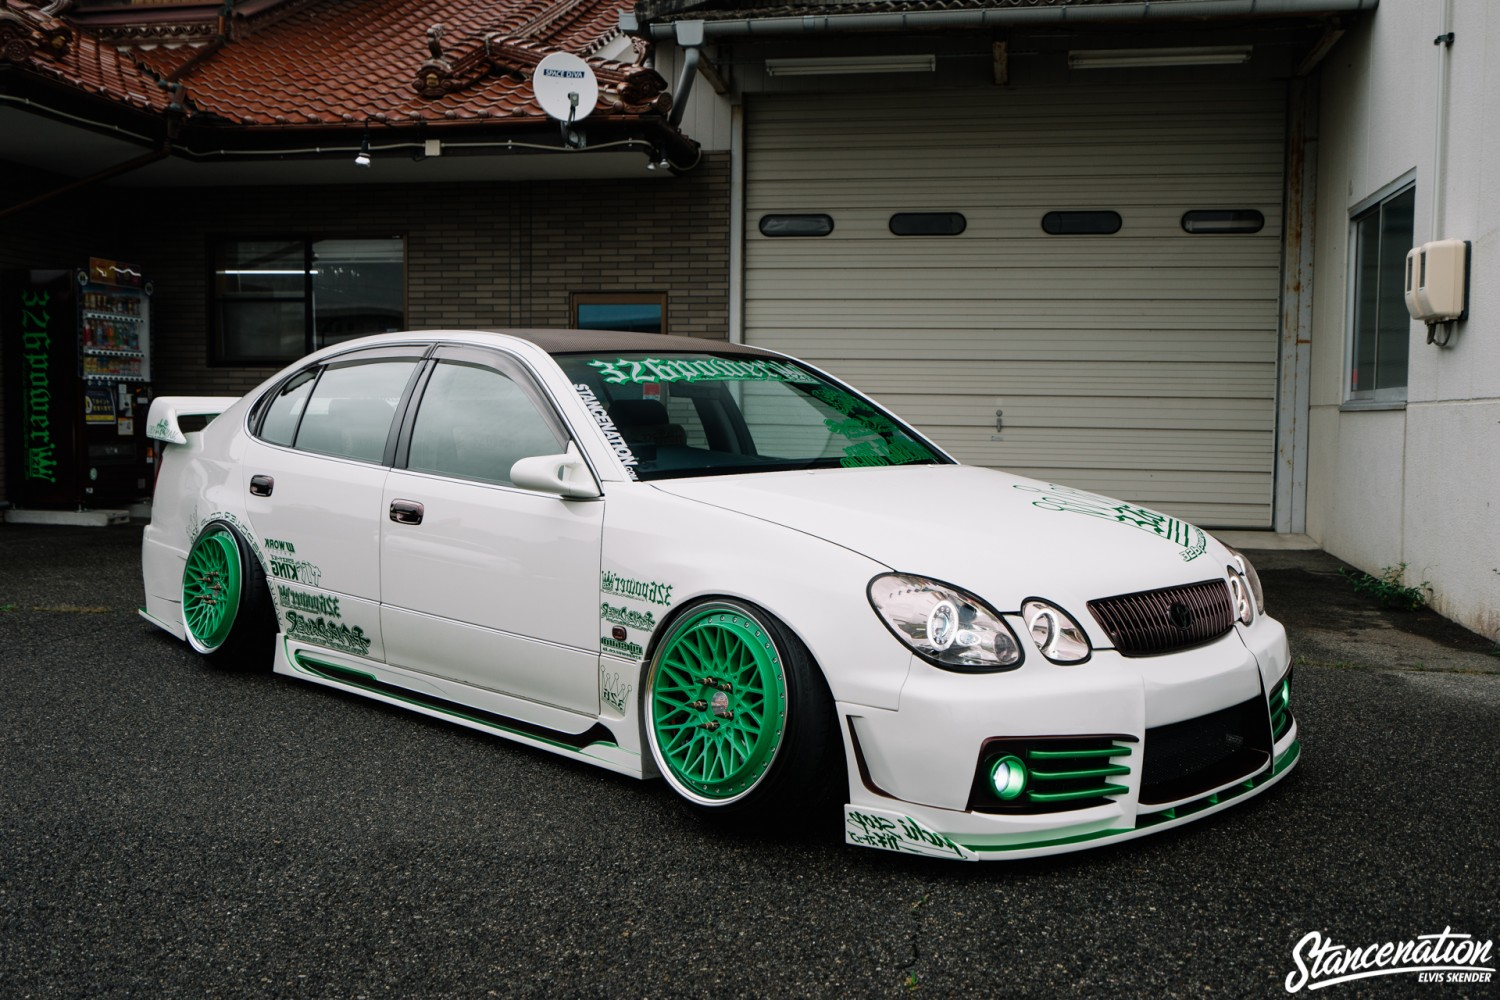 A Closer Look At The 326 Power Toyota Aristo. | StanceNation  // Form > Function